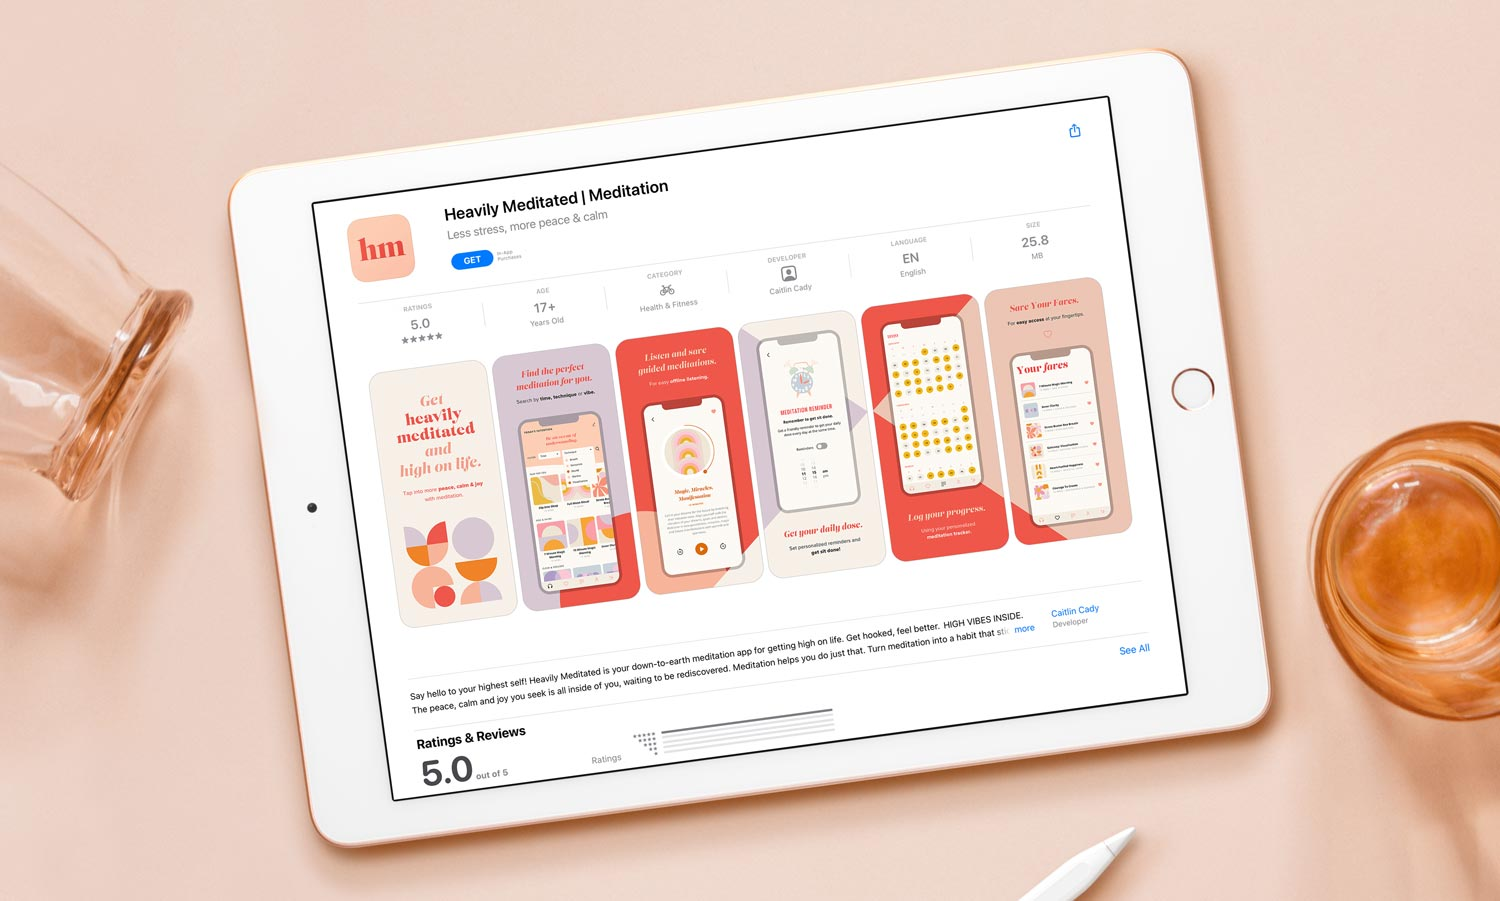 The Heavily Meditated app preview screen, as shown in the App Store, displayed on an ipad